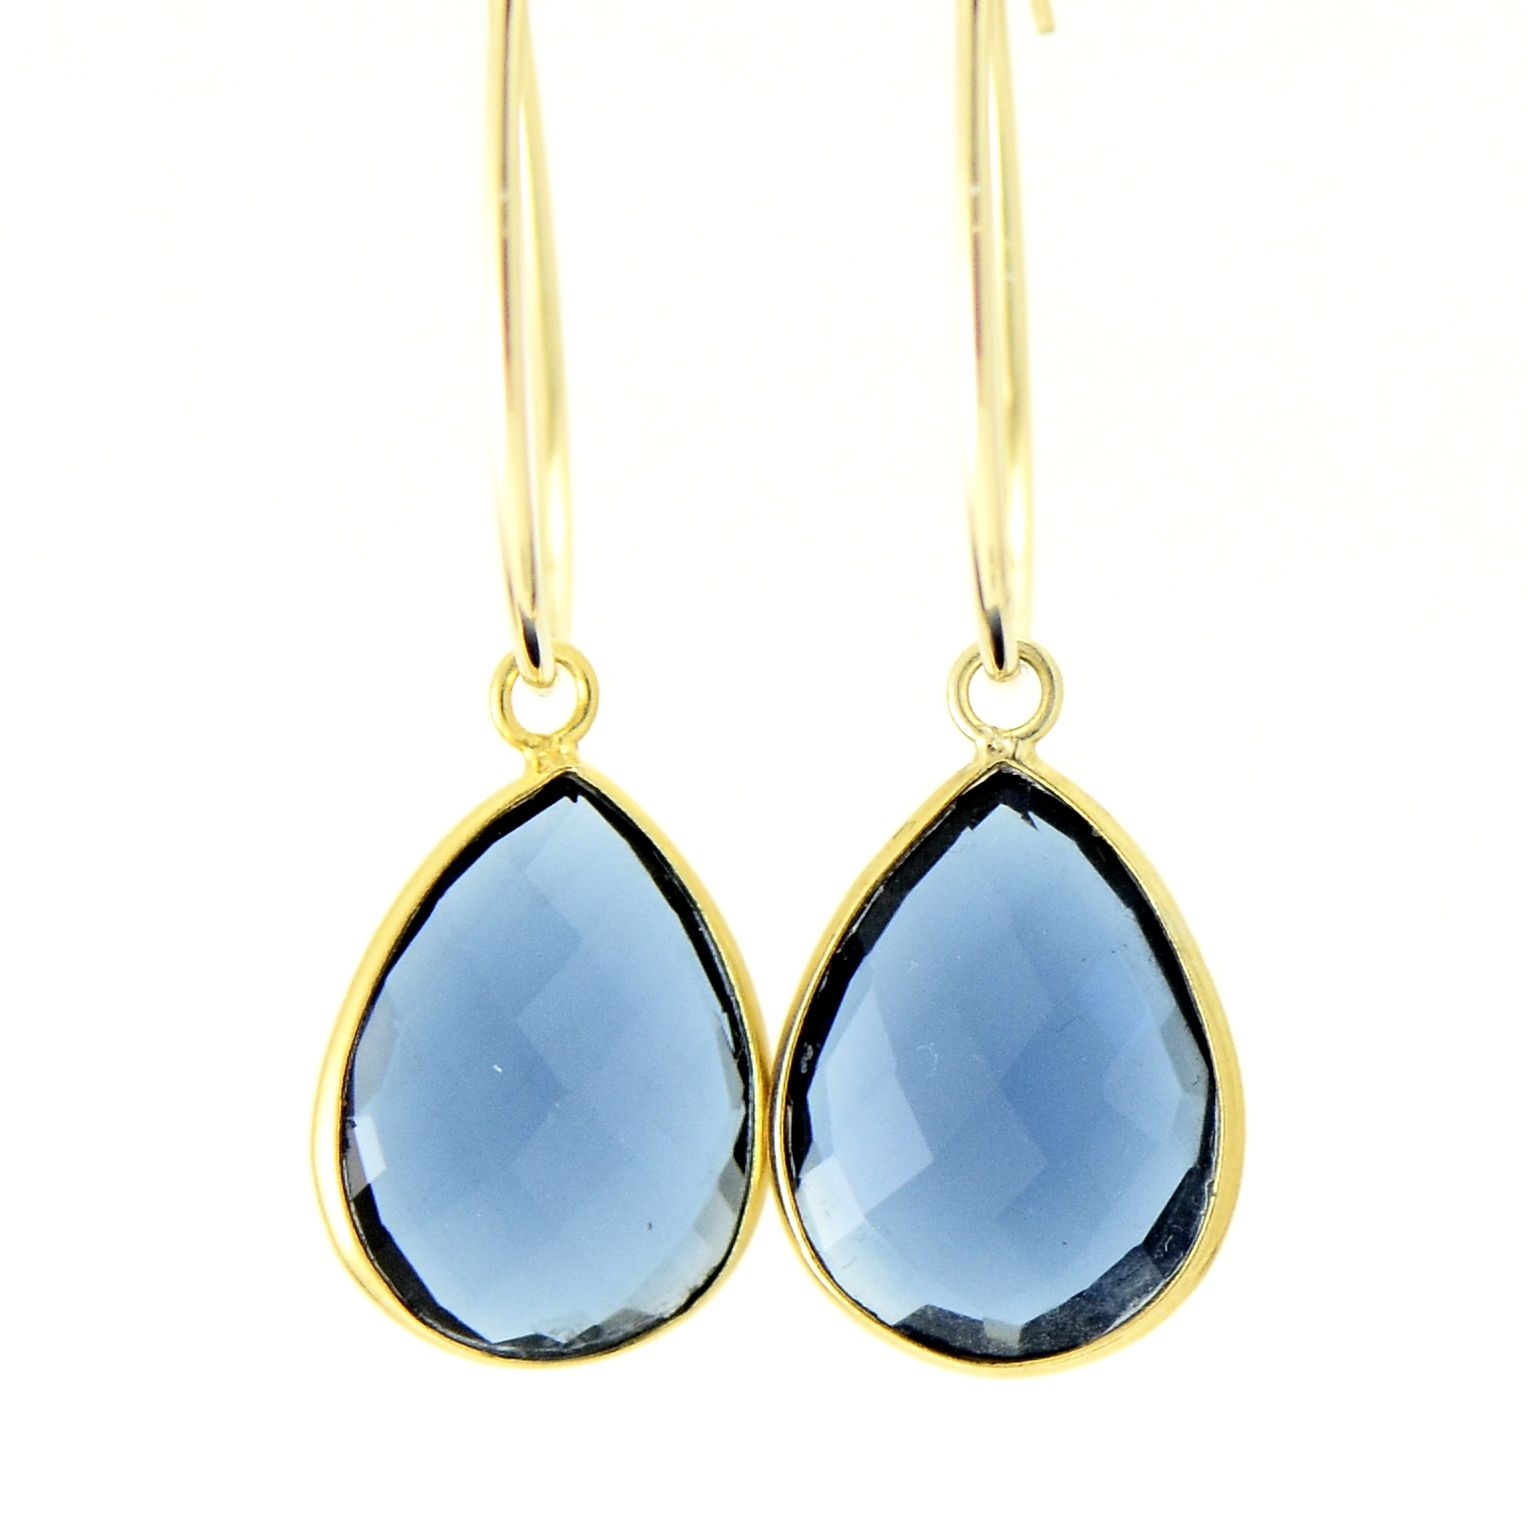 faceted blue crystal quartz teardrops look very cool in the hot summer